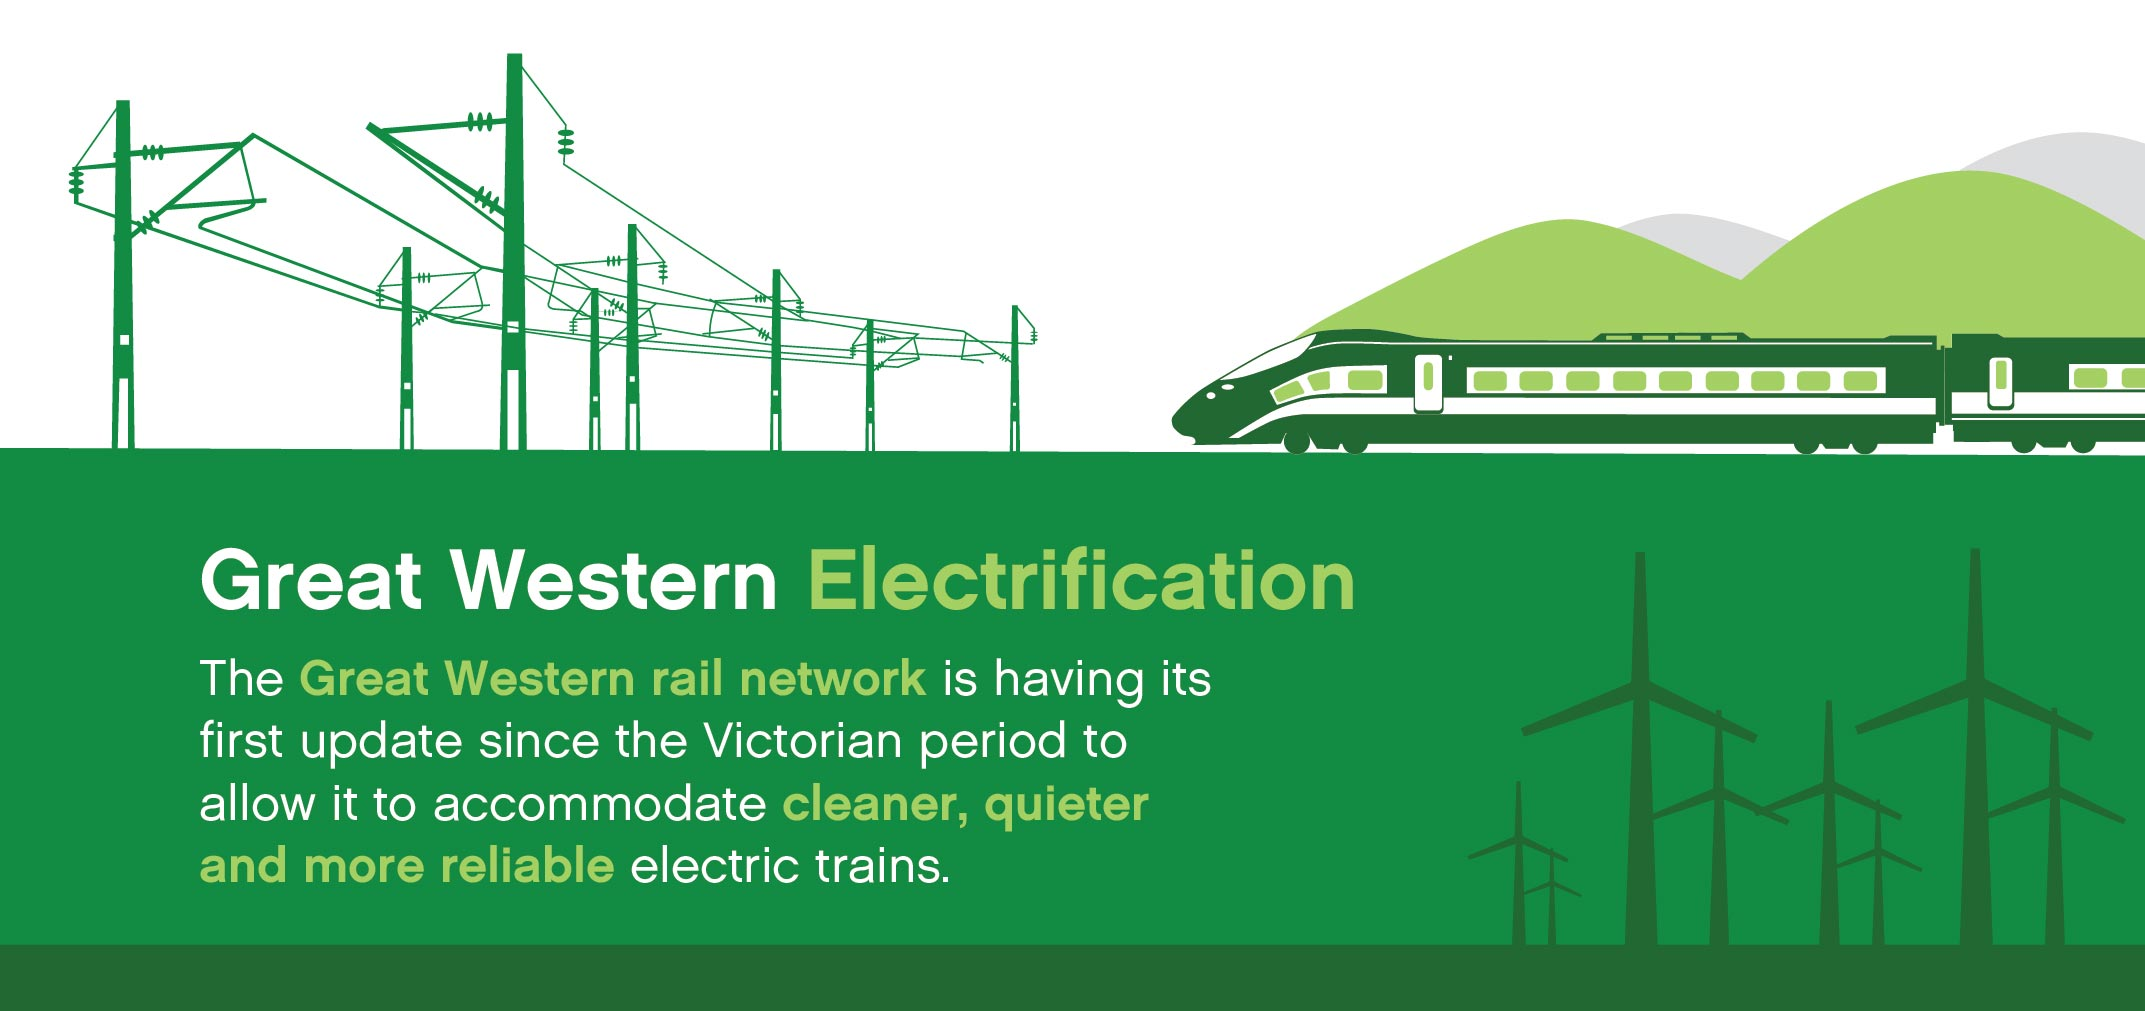 Great Western Electrification summary